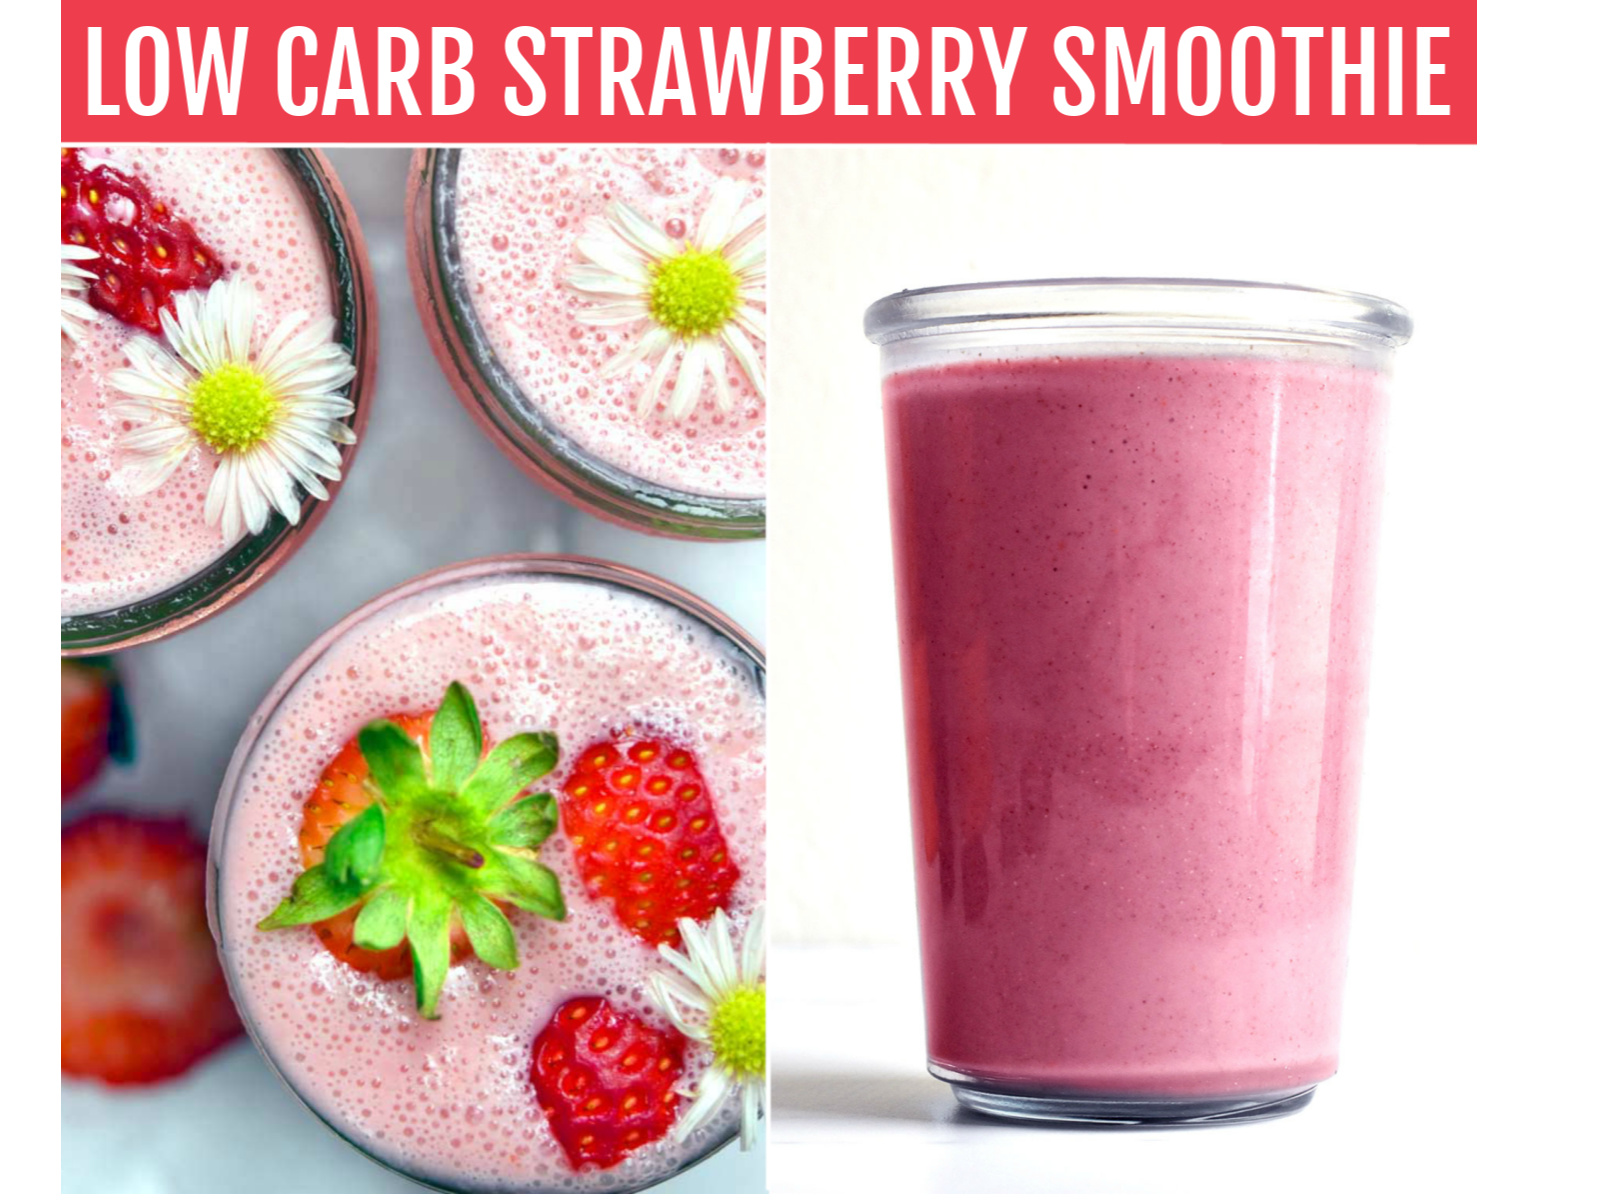 Collage of strawberry low carb smoothie